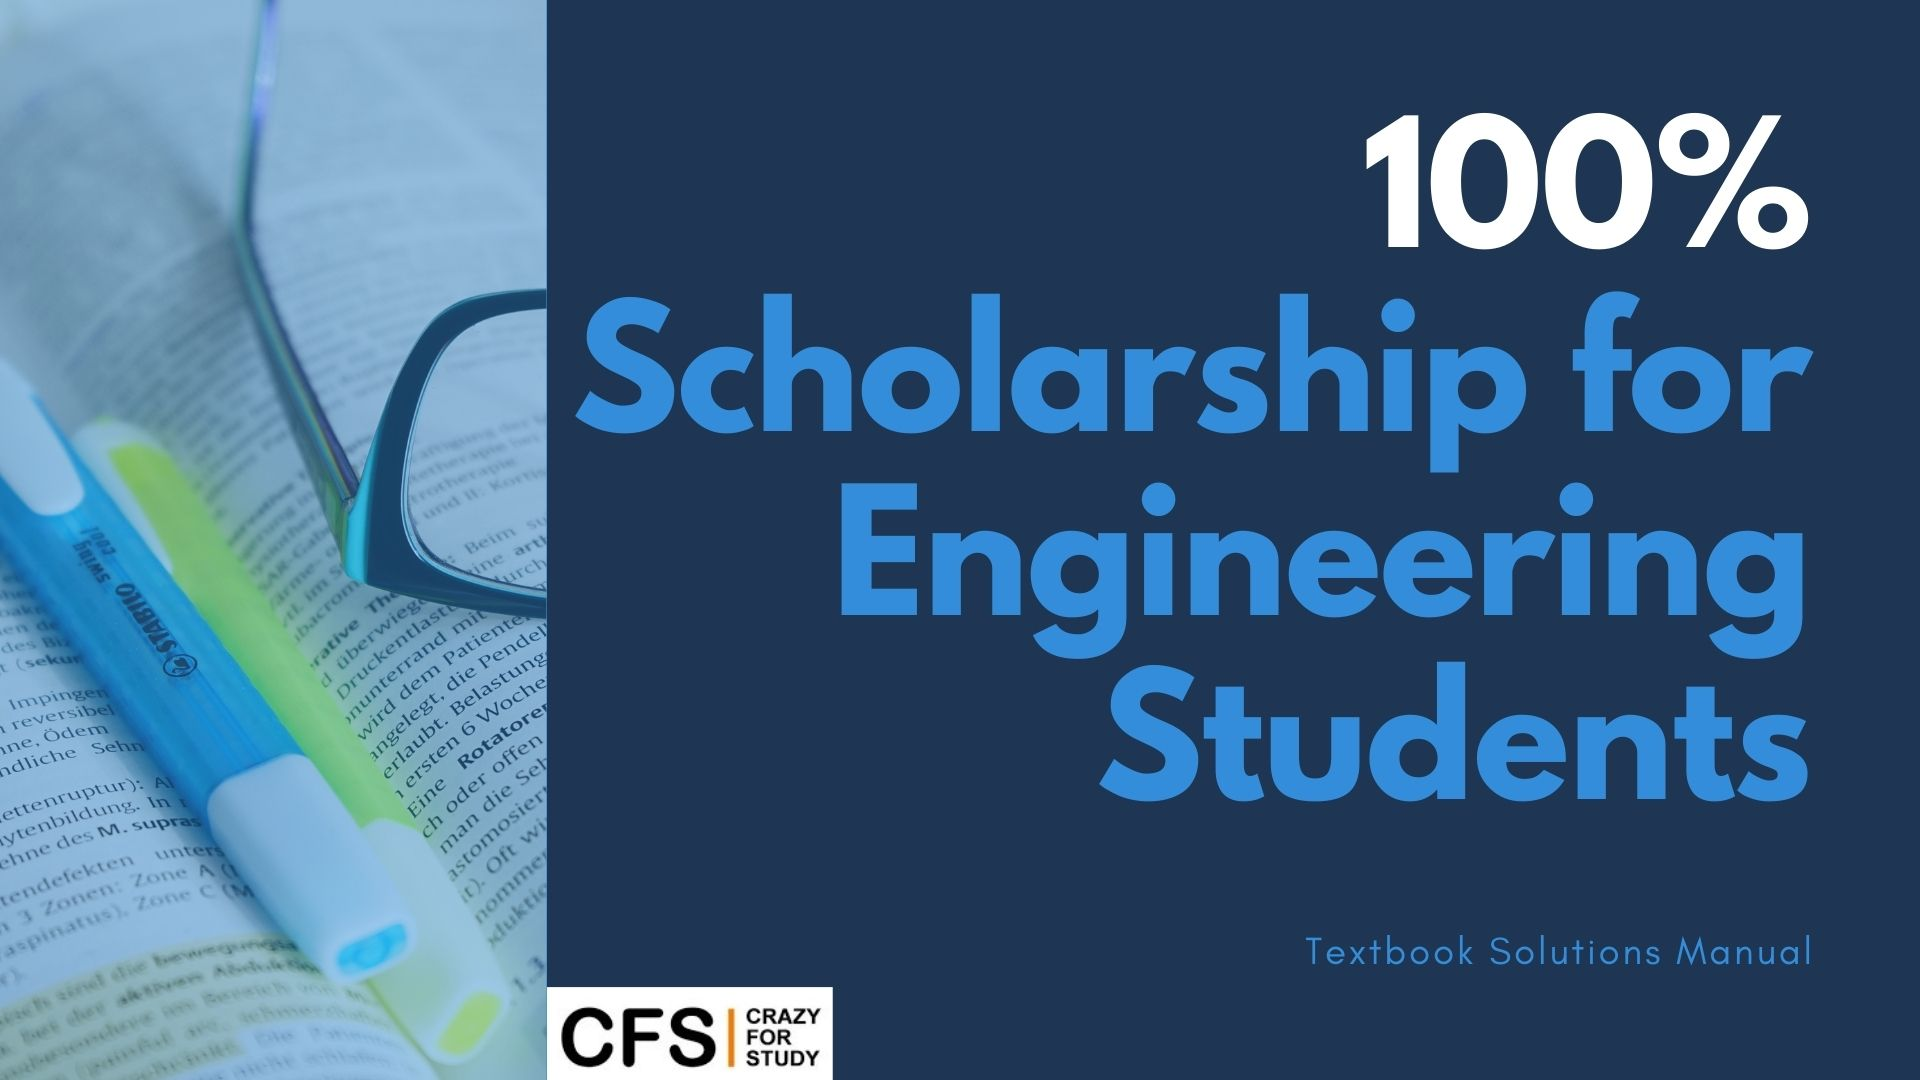 100% scholarship for engineering Students by CFS